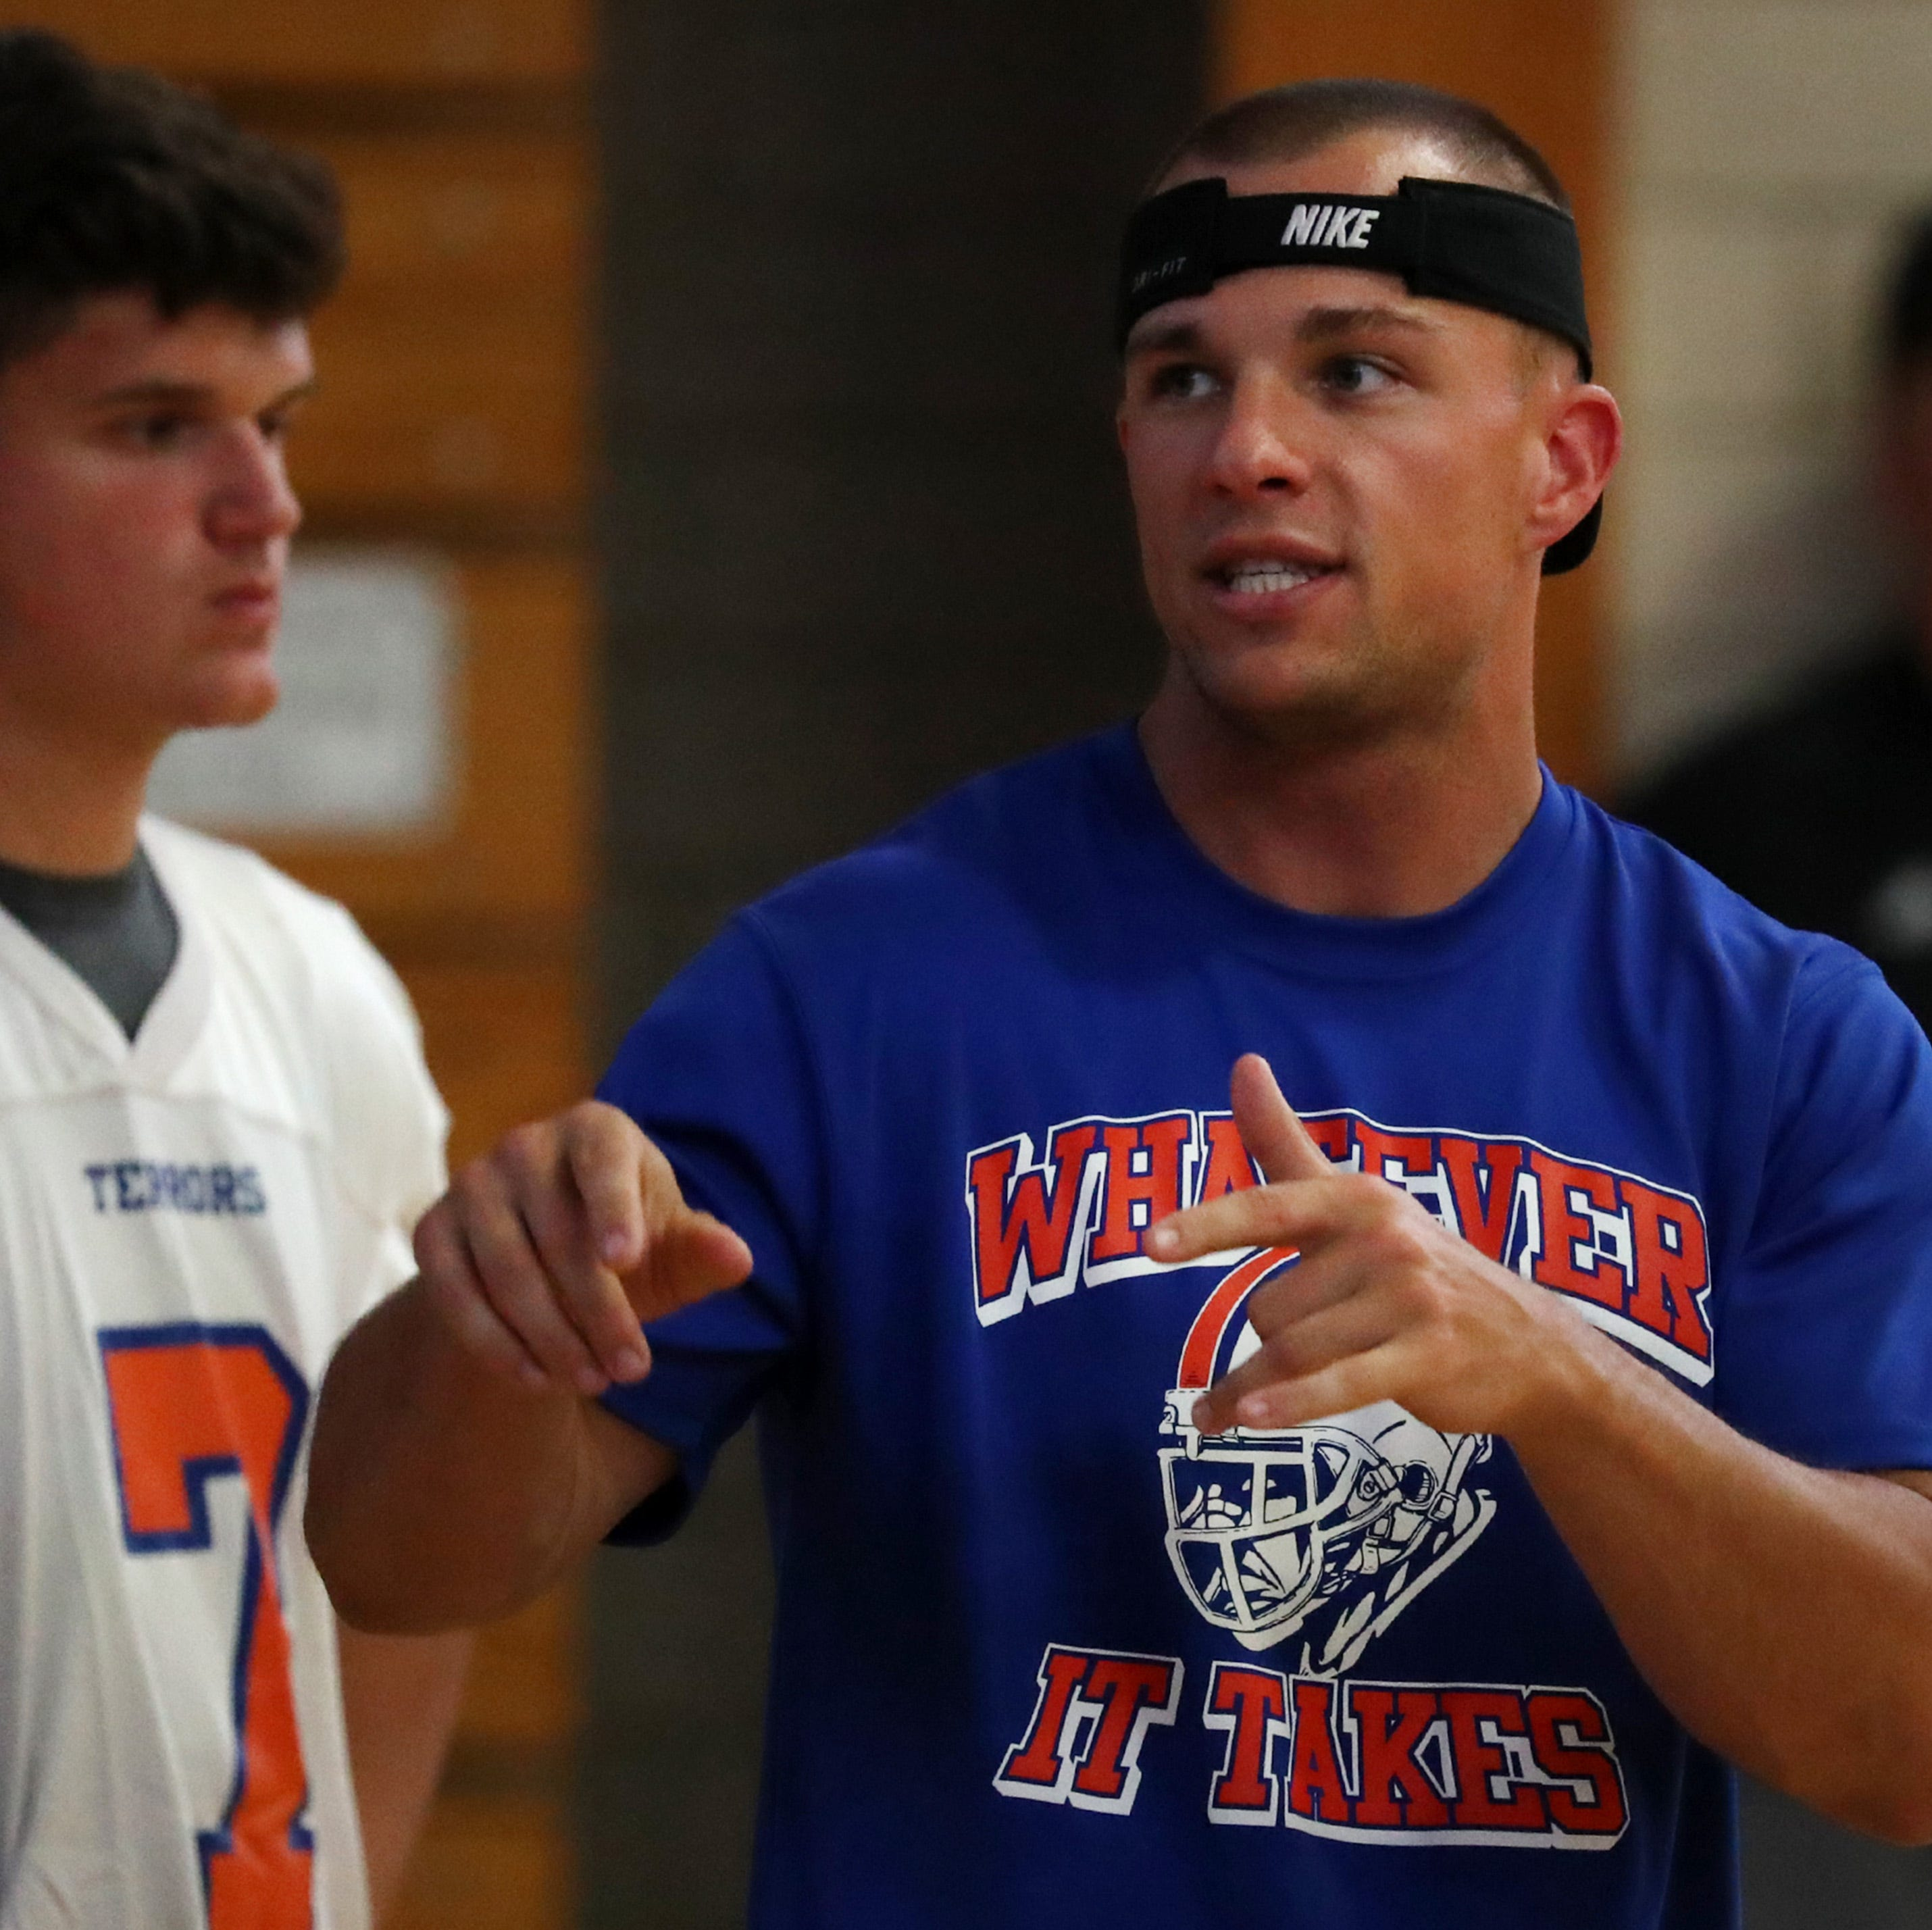 Appleton West coach brings energy to new job